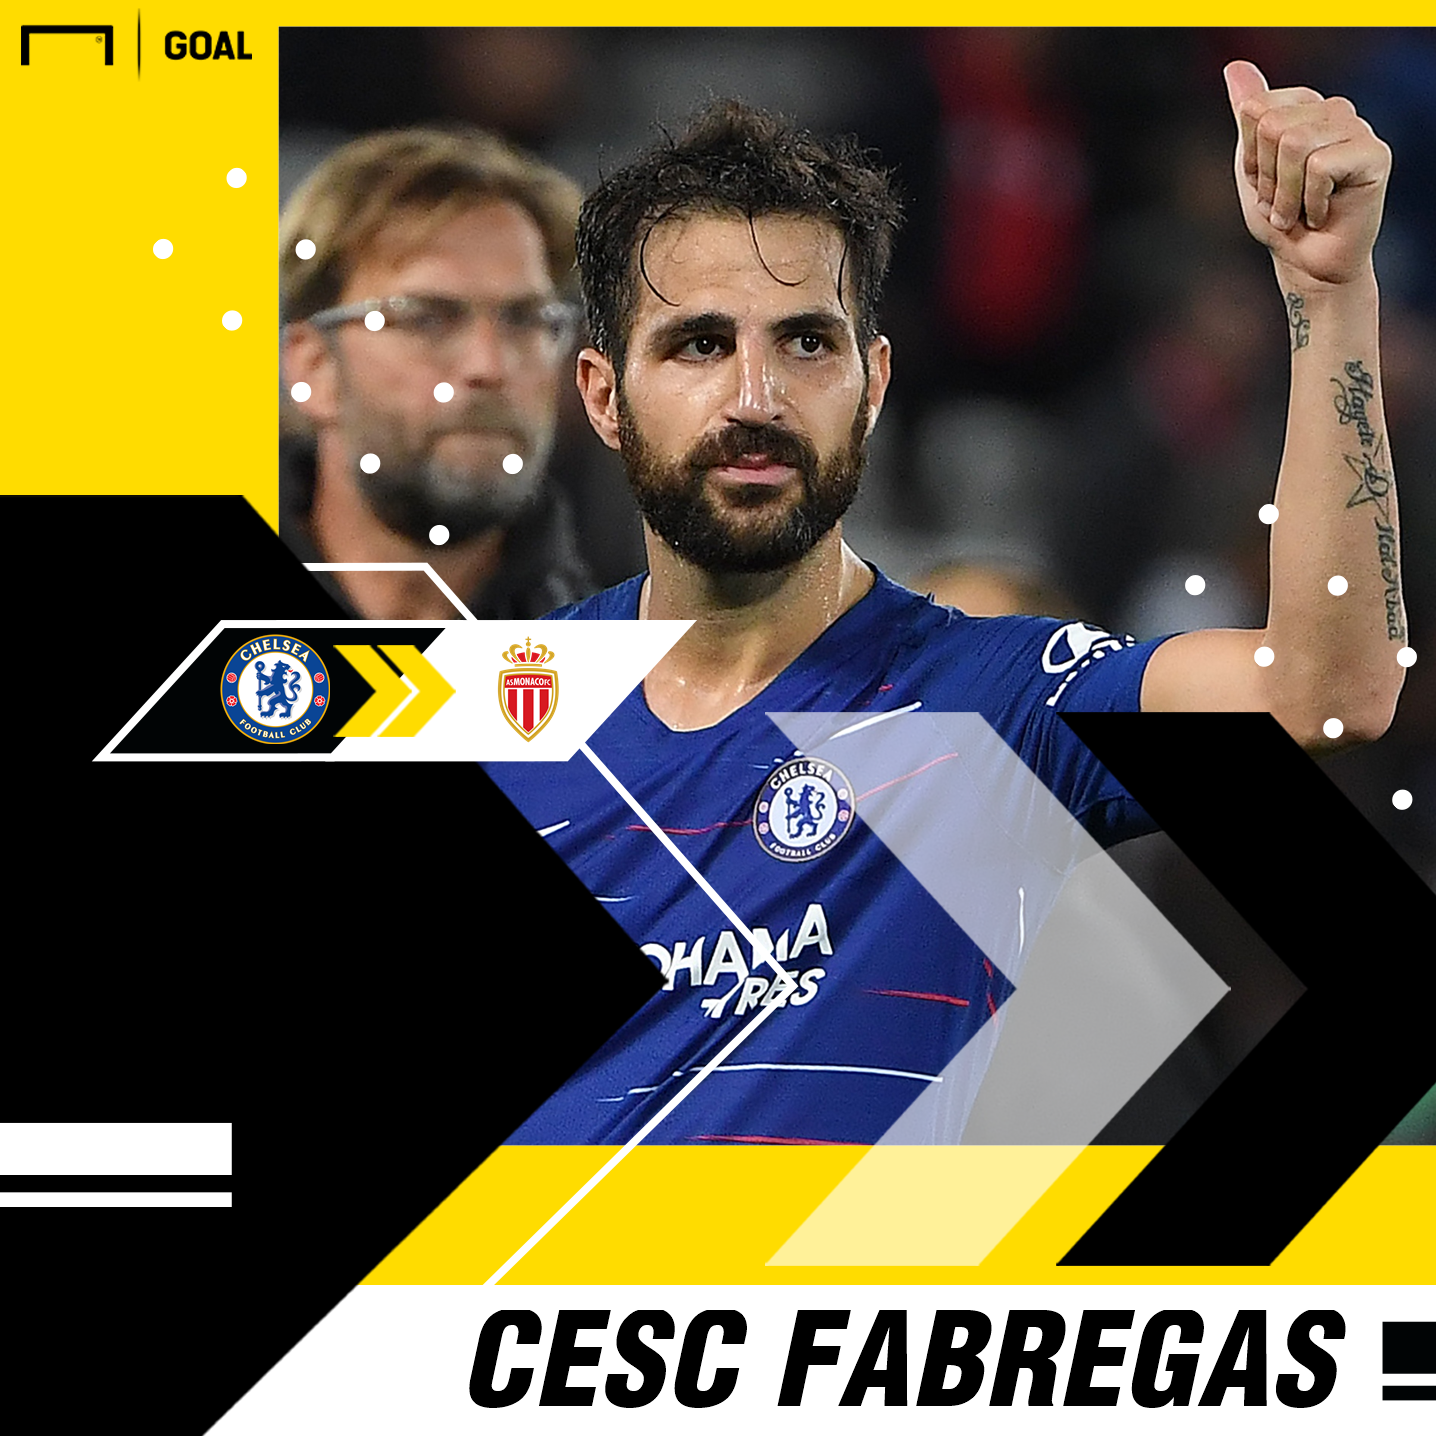 Cesc Fabregas completes move from Chelsea to Monaco